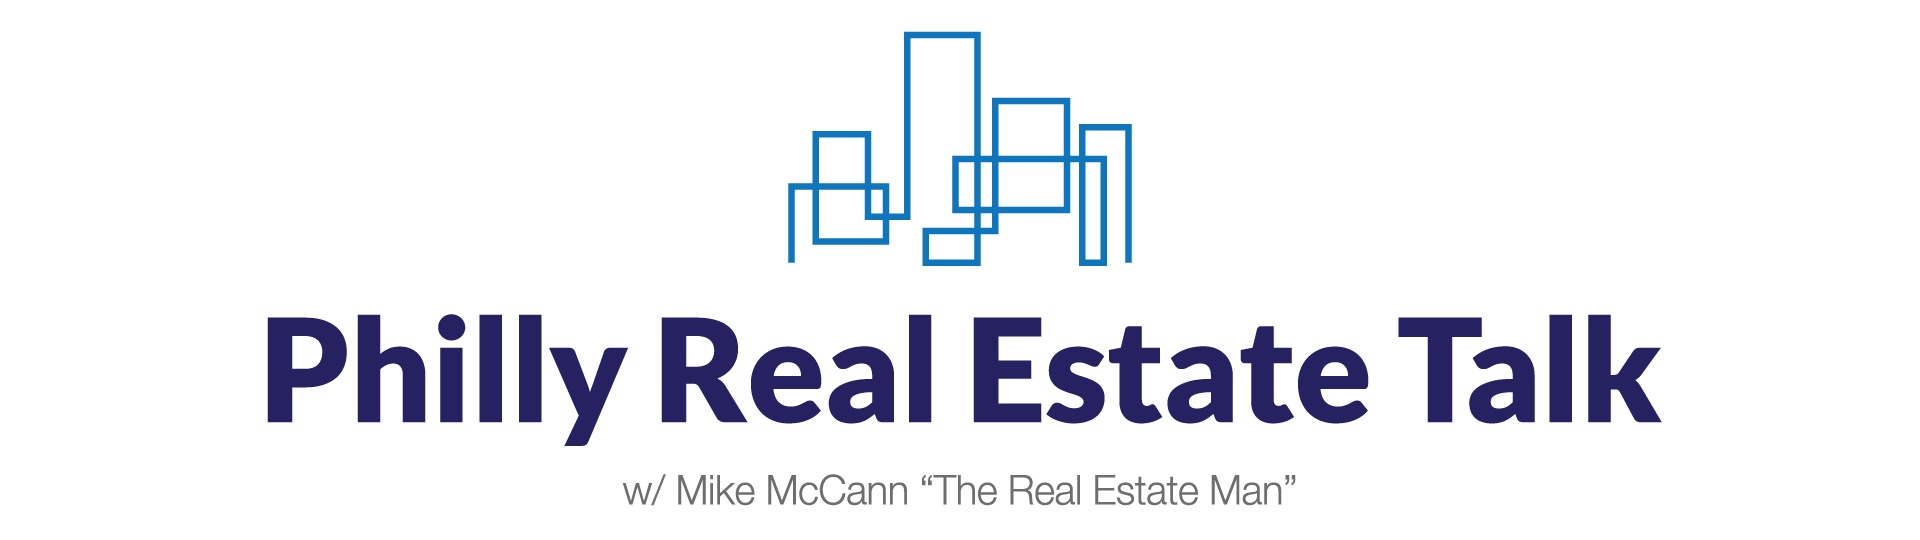 Philly Real Estate Talk with Mike McCann on WBCB 1490